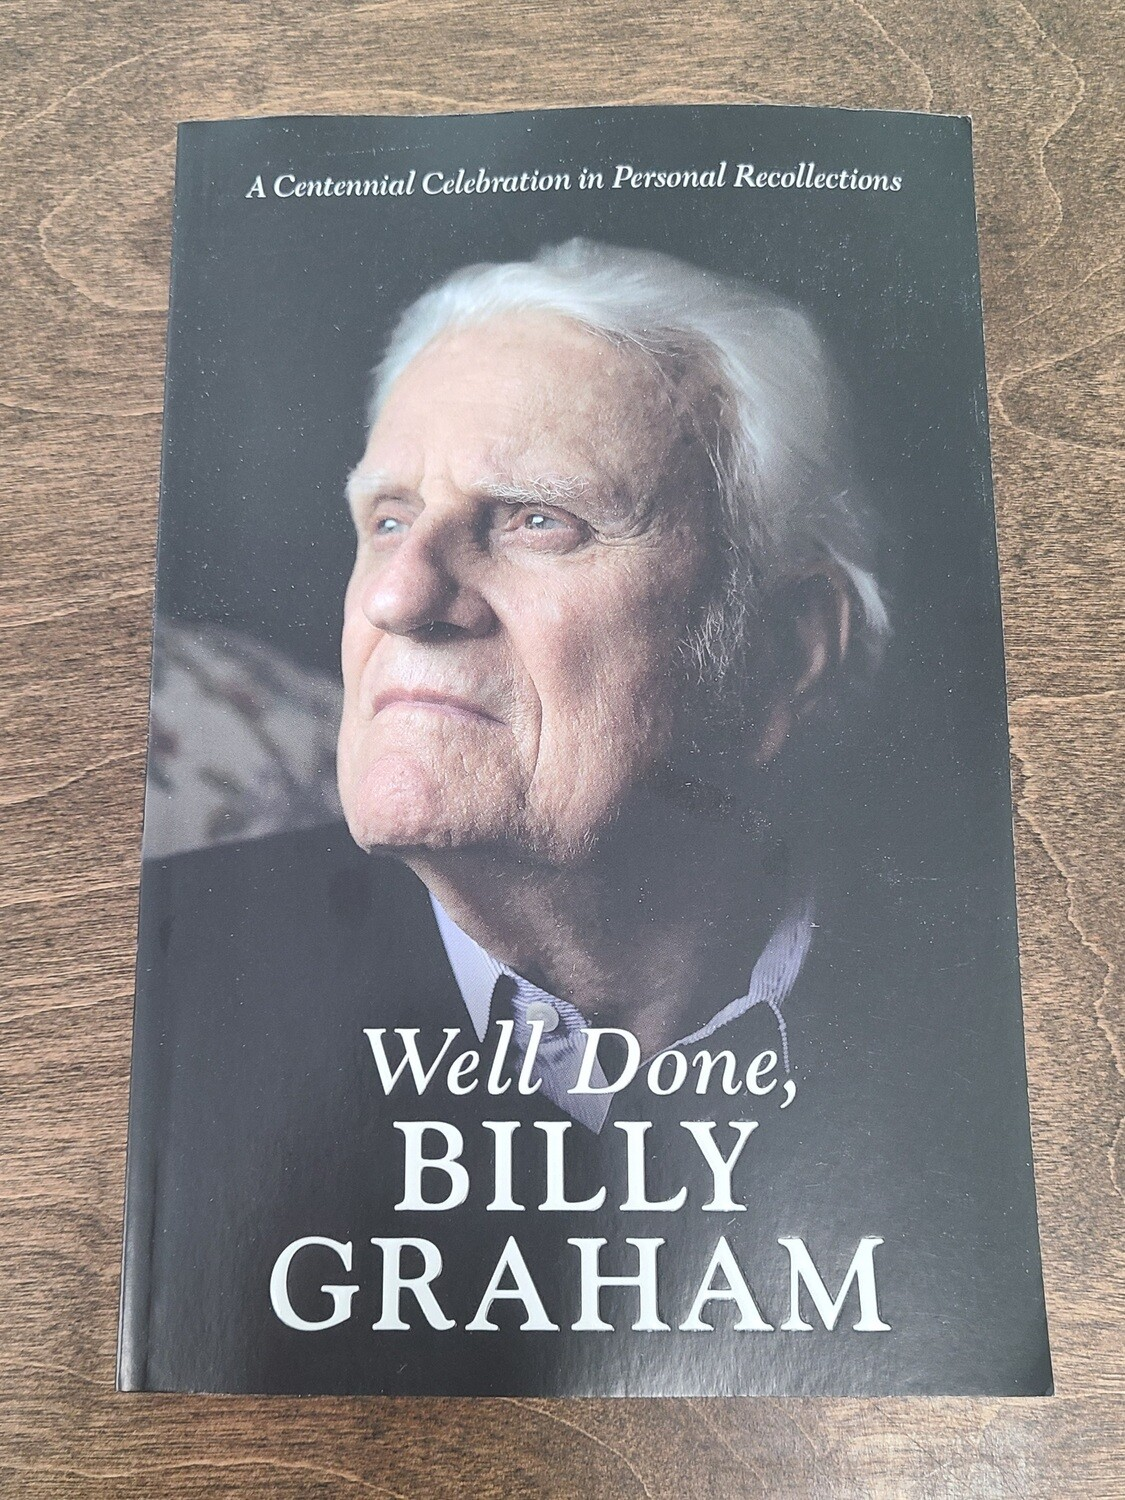 Well Done, Billy Graham by Jerushah Armfield and Aram and Box Tchividjian